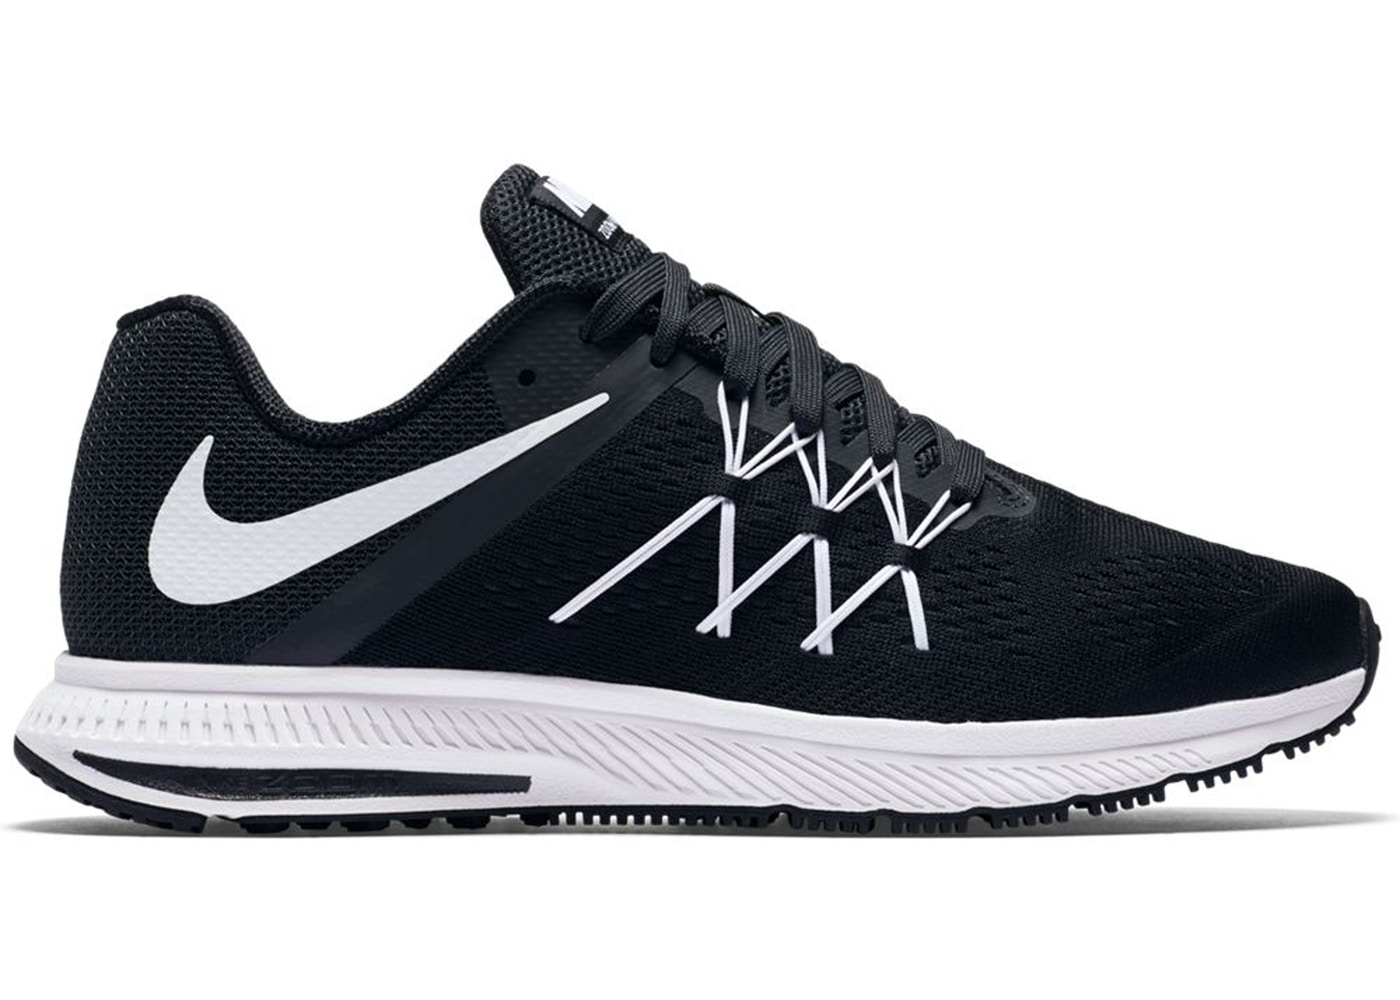 outlet store 7f097 ca437 Nike Zoom Winflo 3 Black White